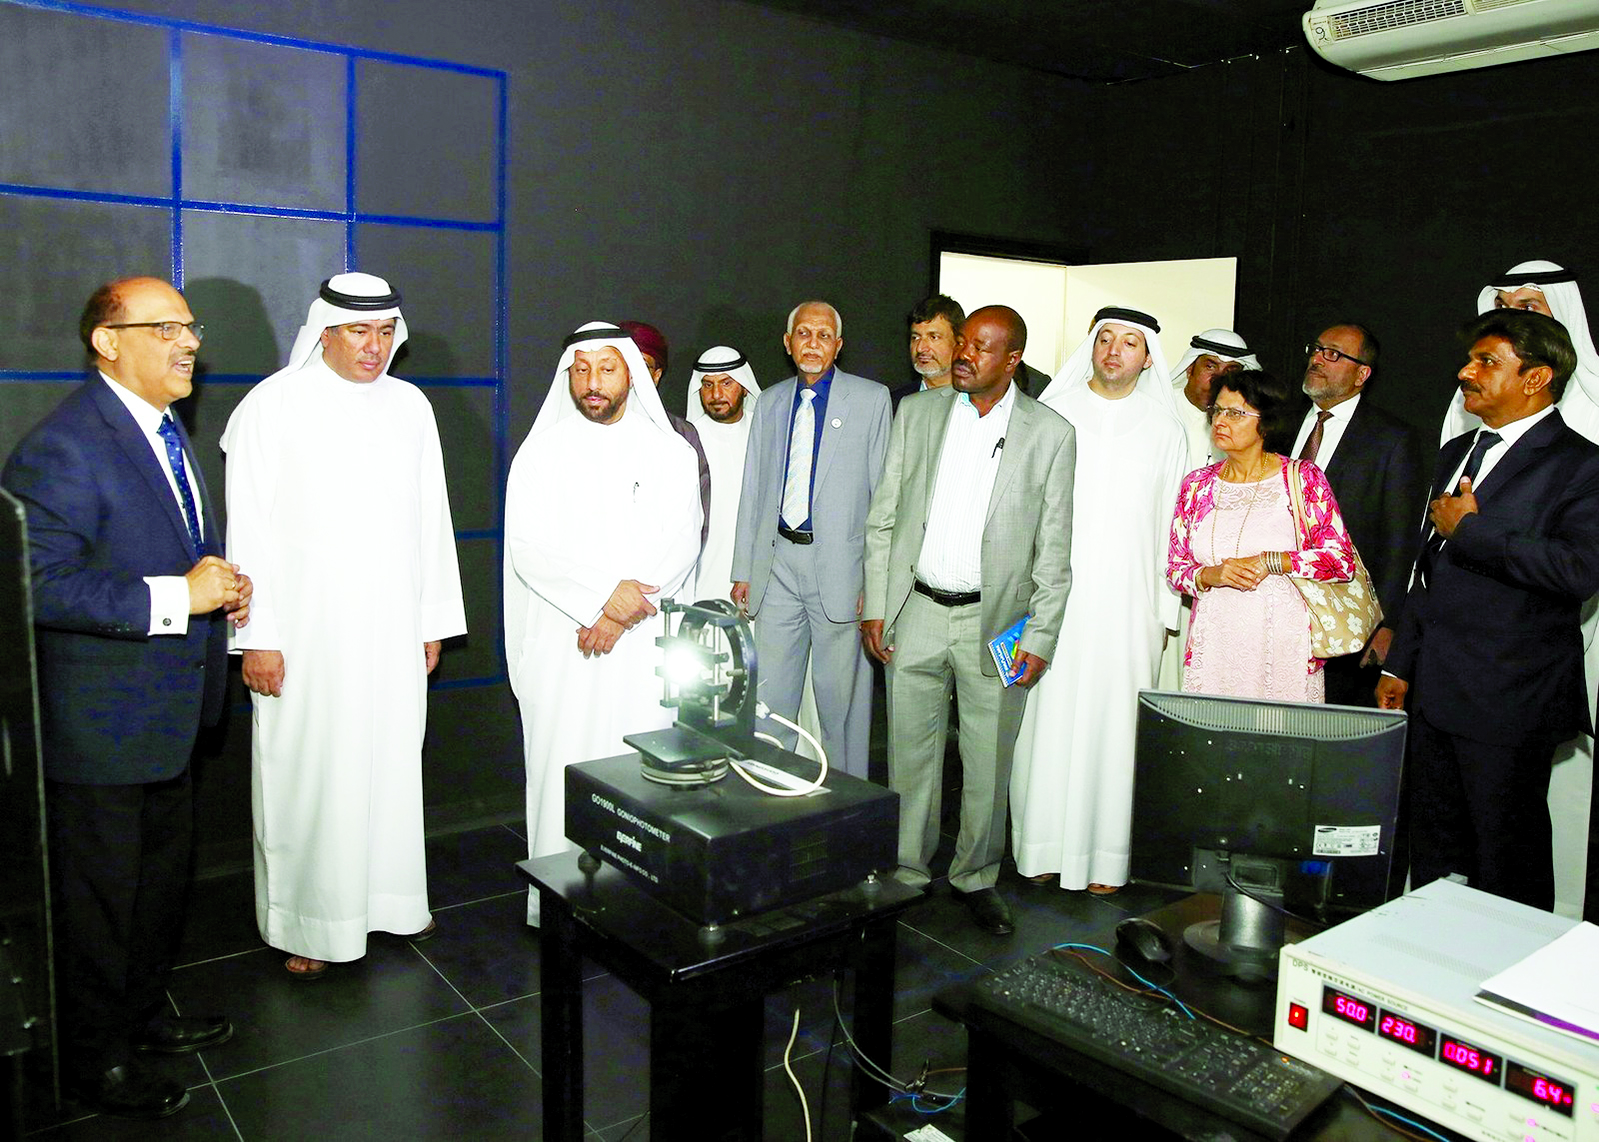 Abdallah Sultan Al Owais, chairman of Sharjah Chamber of Commerce Industry, and other guests during the tour of Rexton Technologies LED fittings facility in SAIF Zone